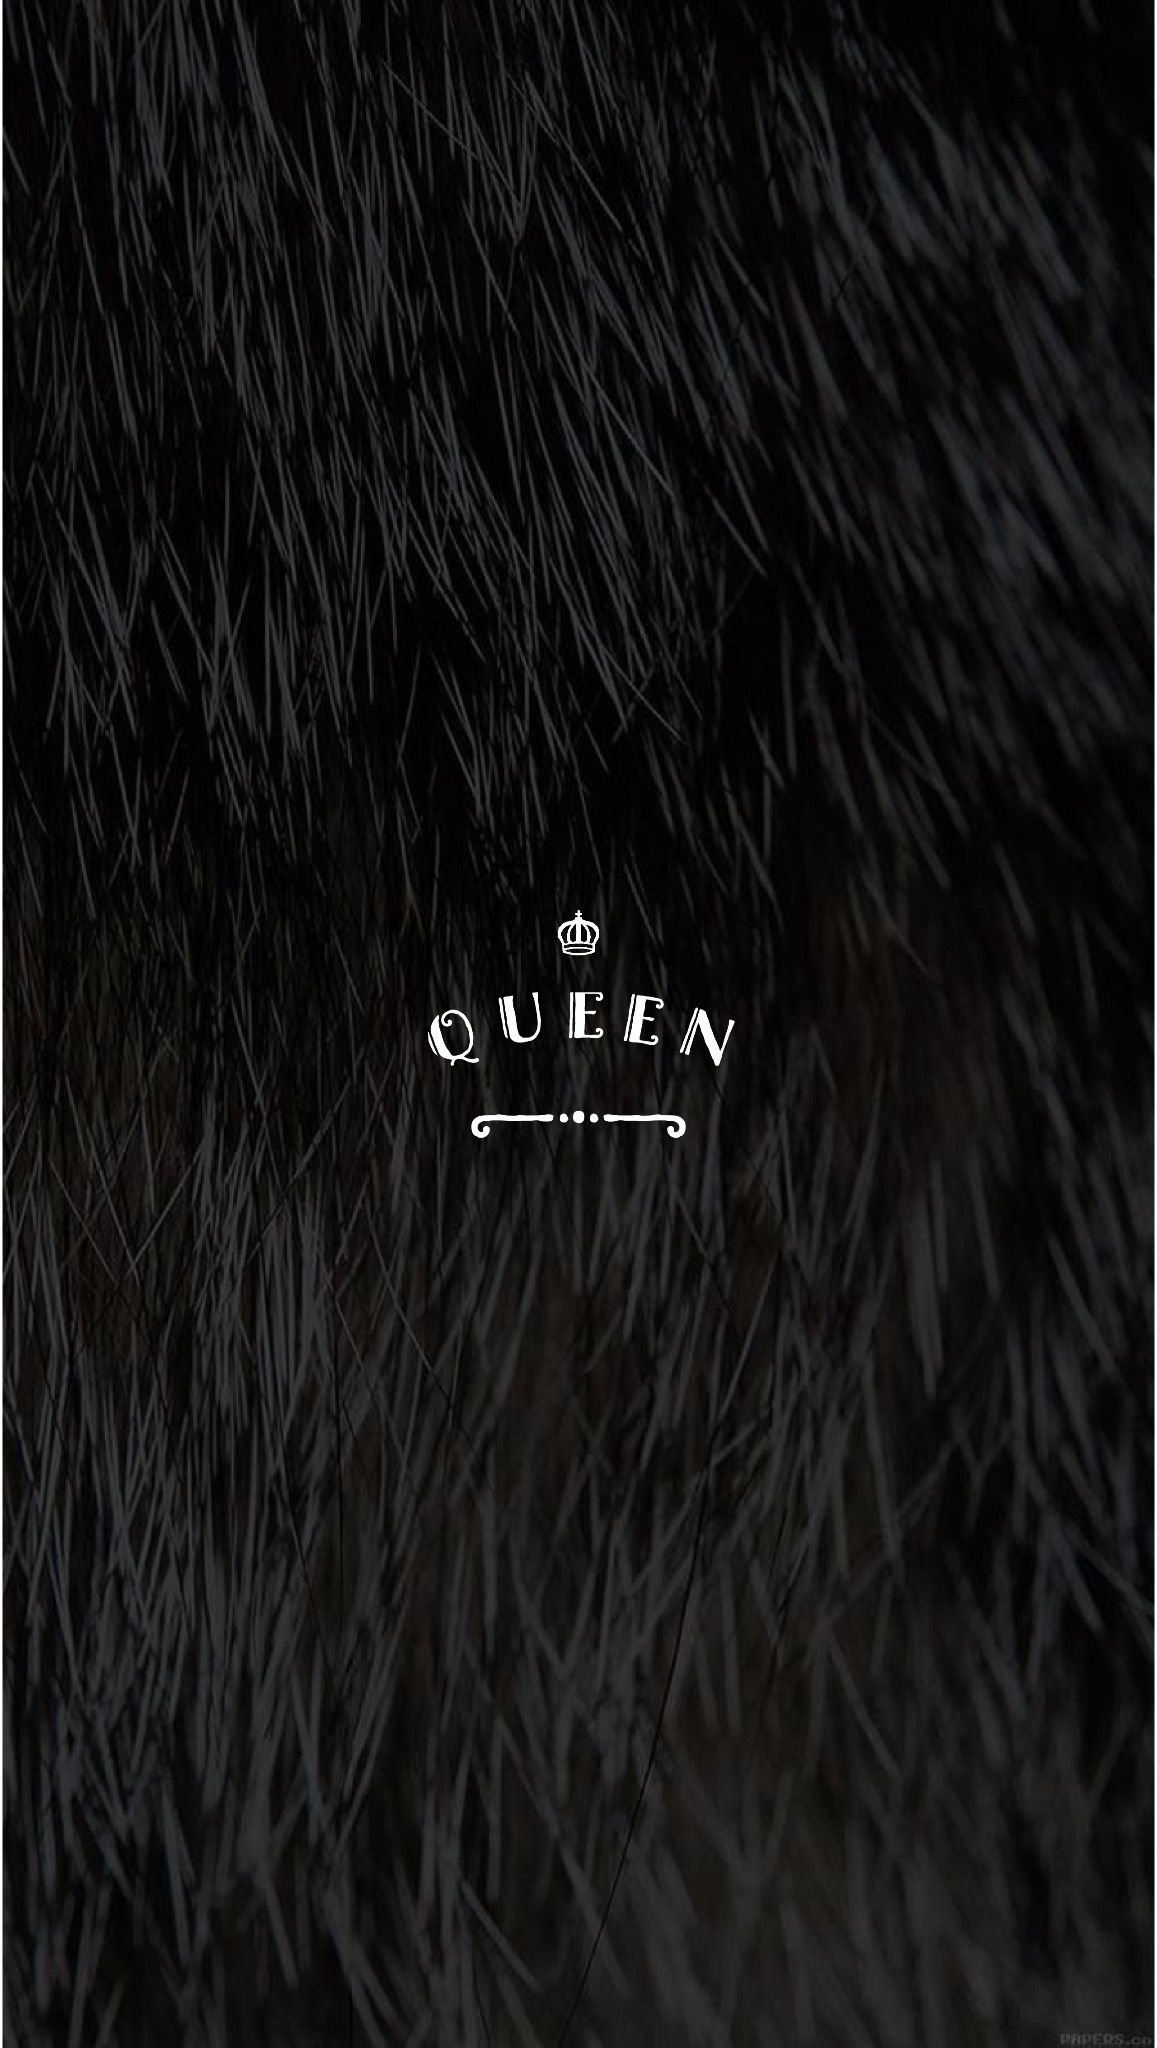 Black Faux Fur Pretty Positivity Queen Iphone Mobile Wallpaper By Evaland